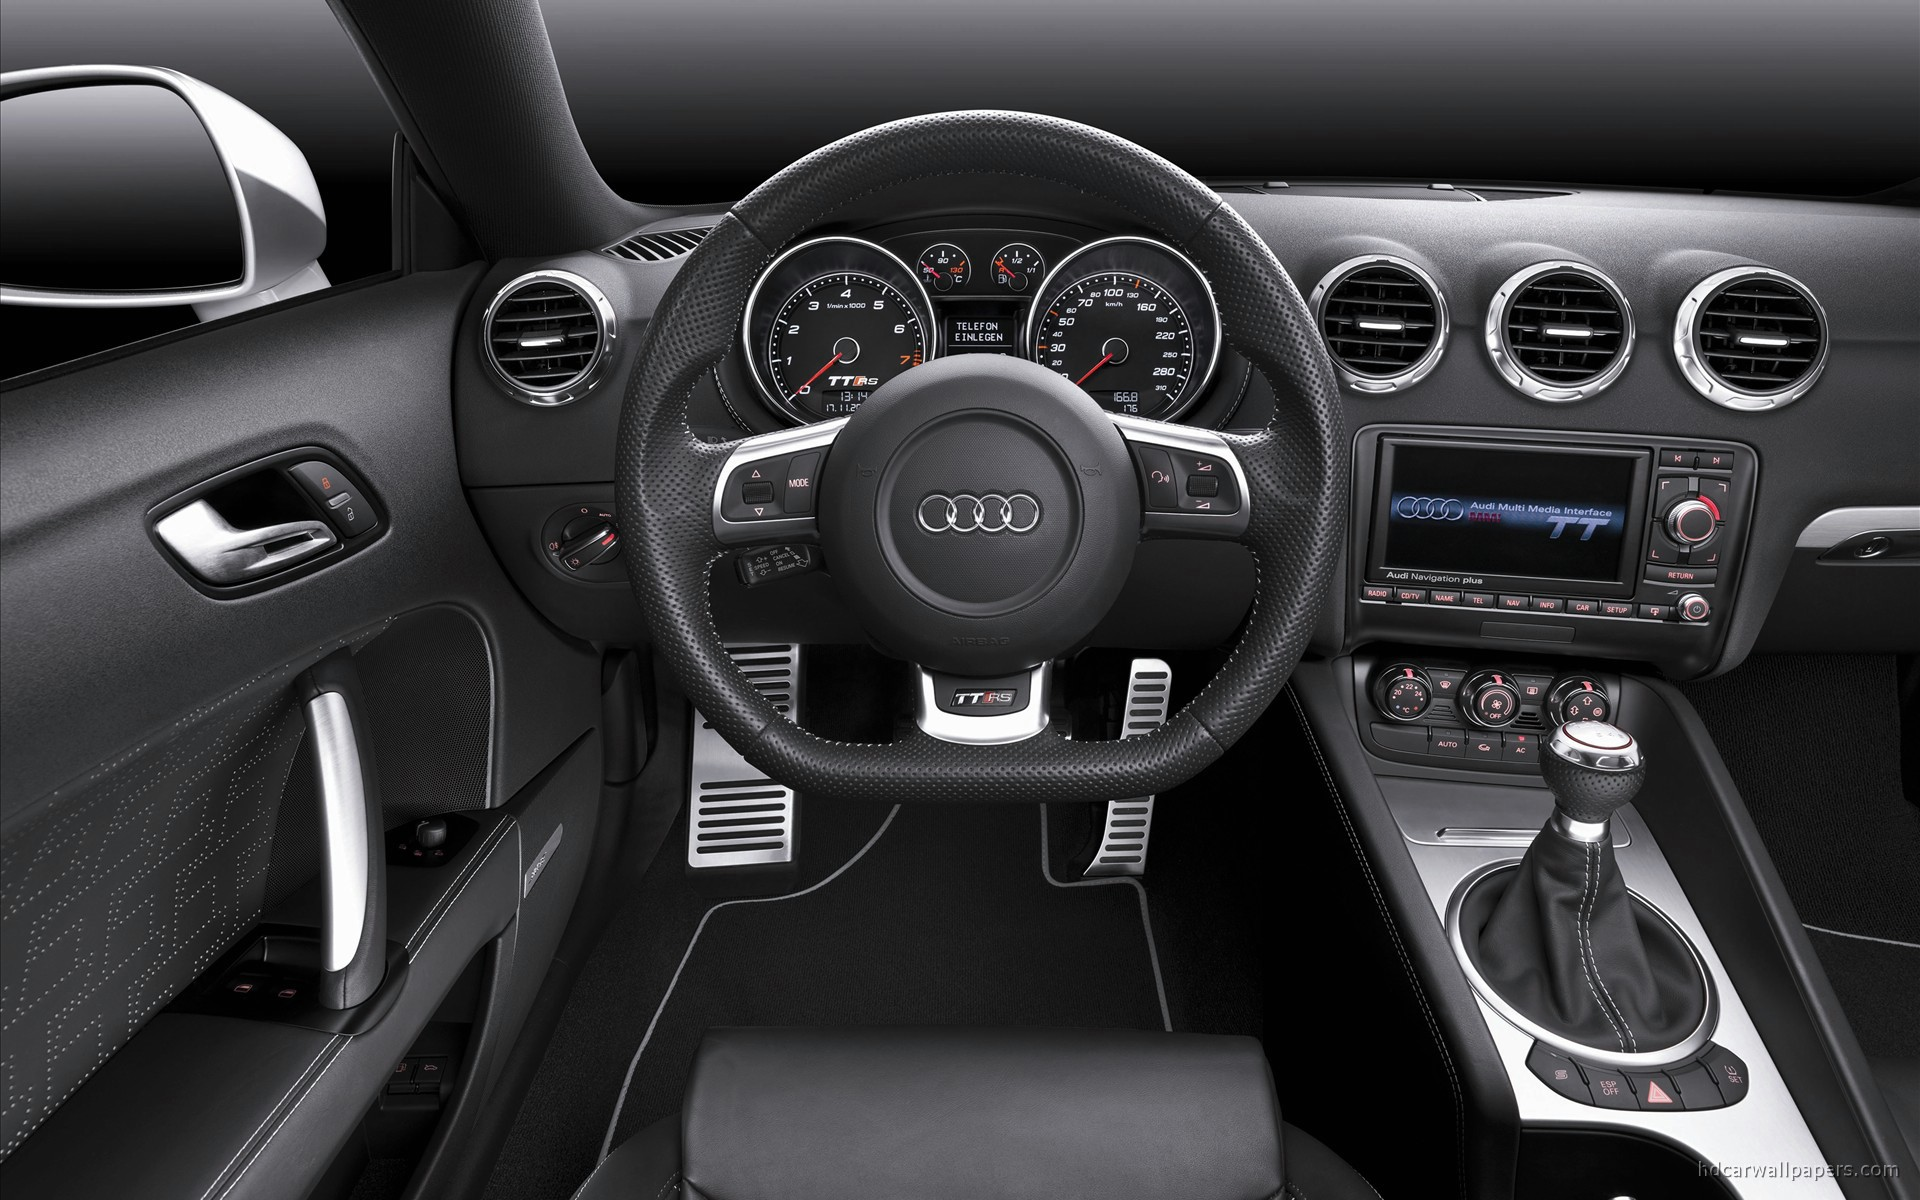 2010 audi tt rs coupe interior wallpaper hd car wallpapers for Audi tt interieur